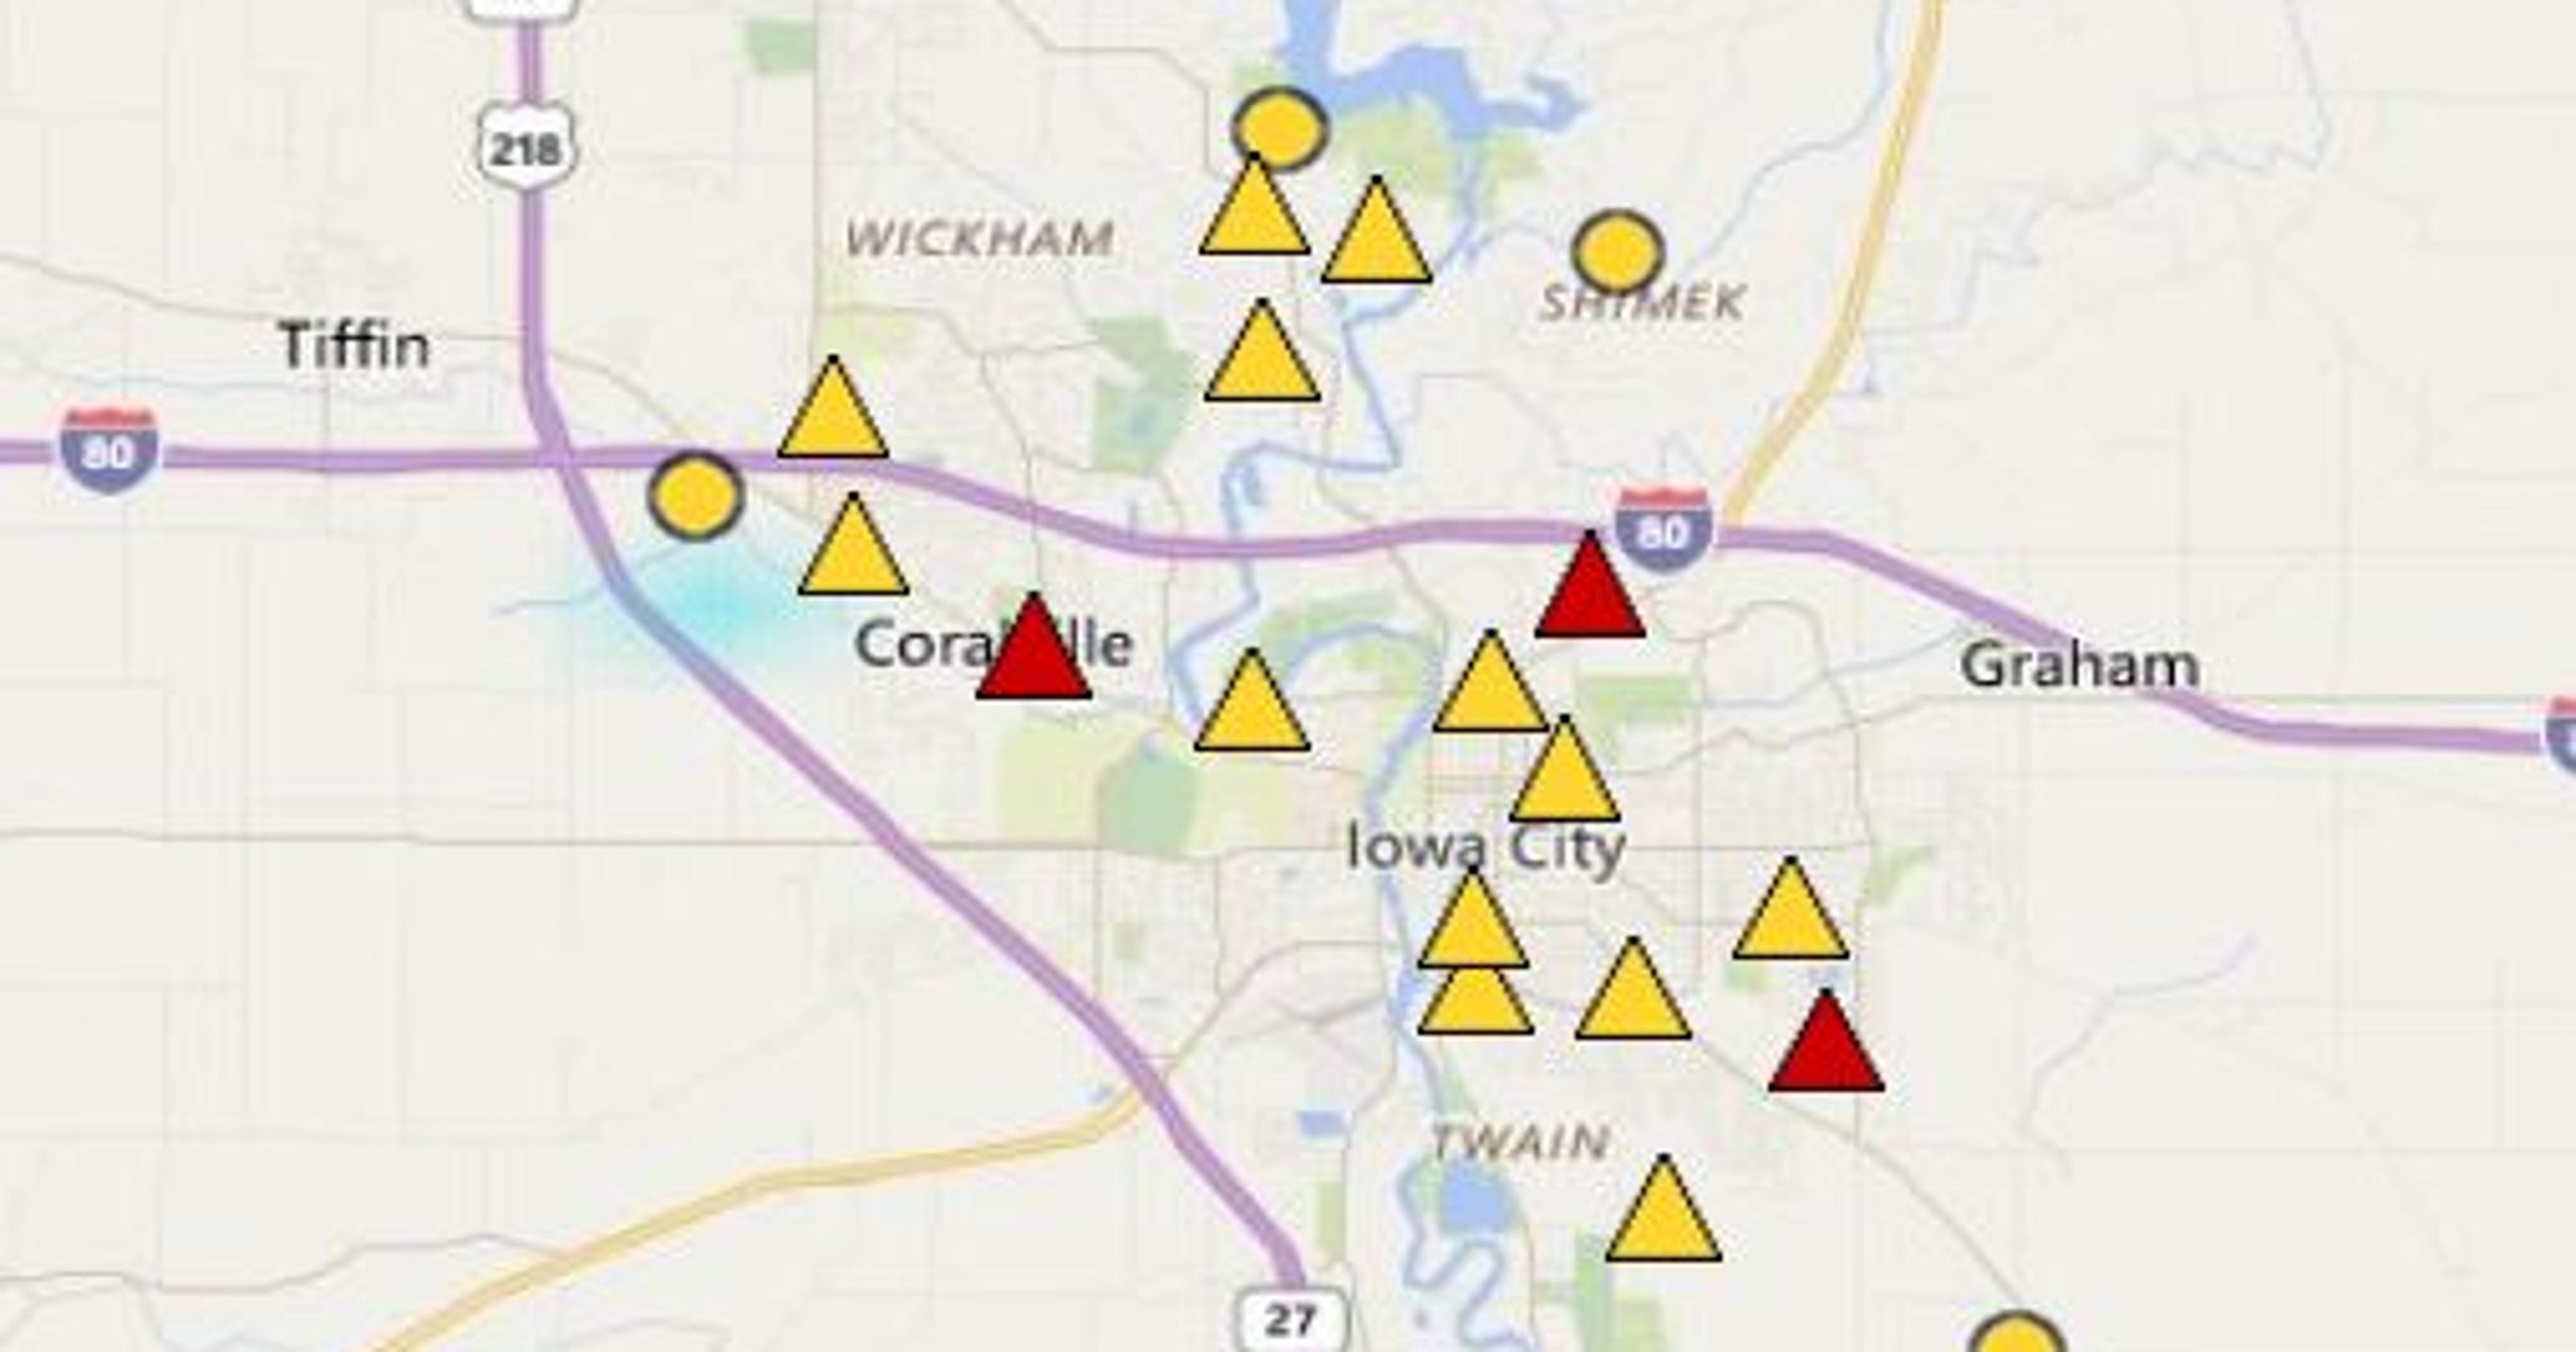 Power Restored After 2 Hour Iowa City Area Outage Leaves Thousand In